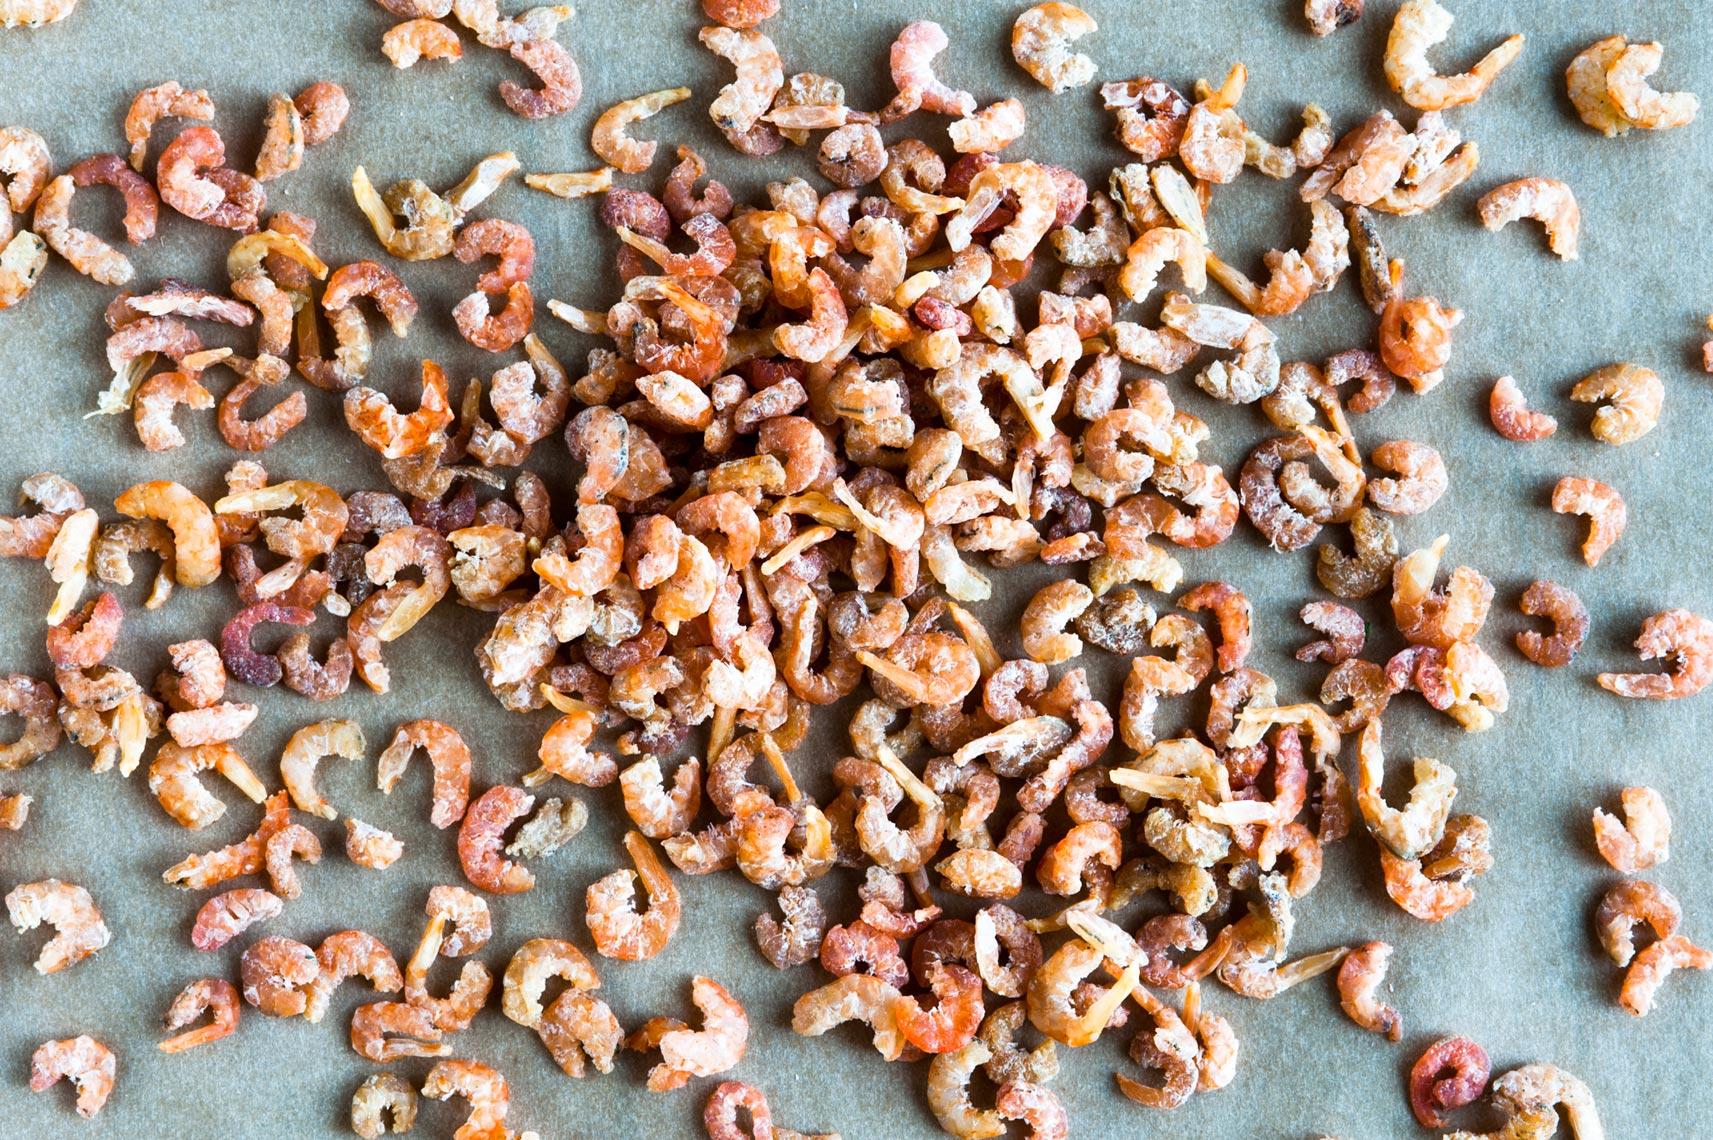 NYC Food Photographer Jennifer May Tiny Dried Shrimp